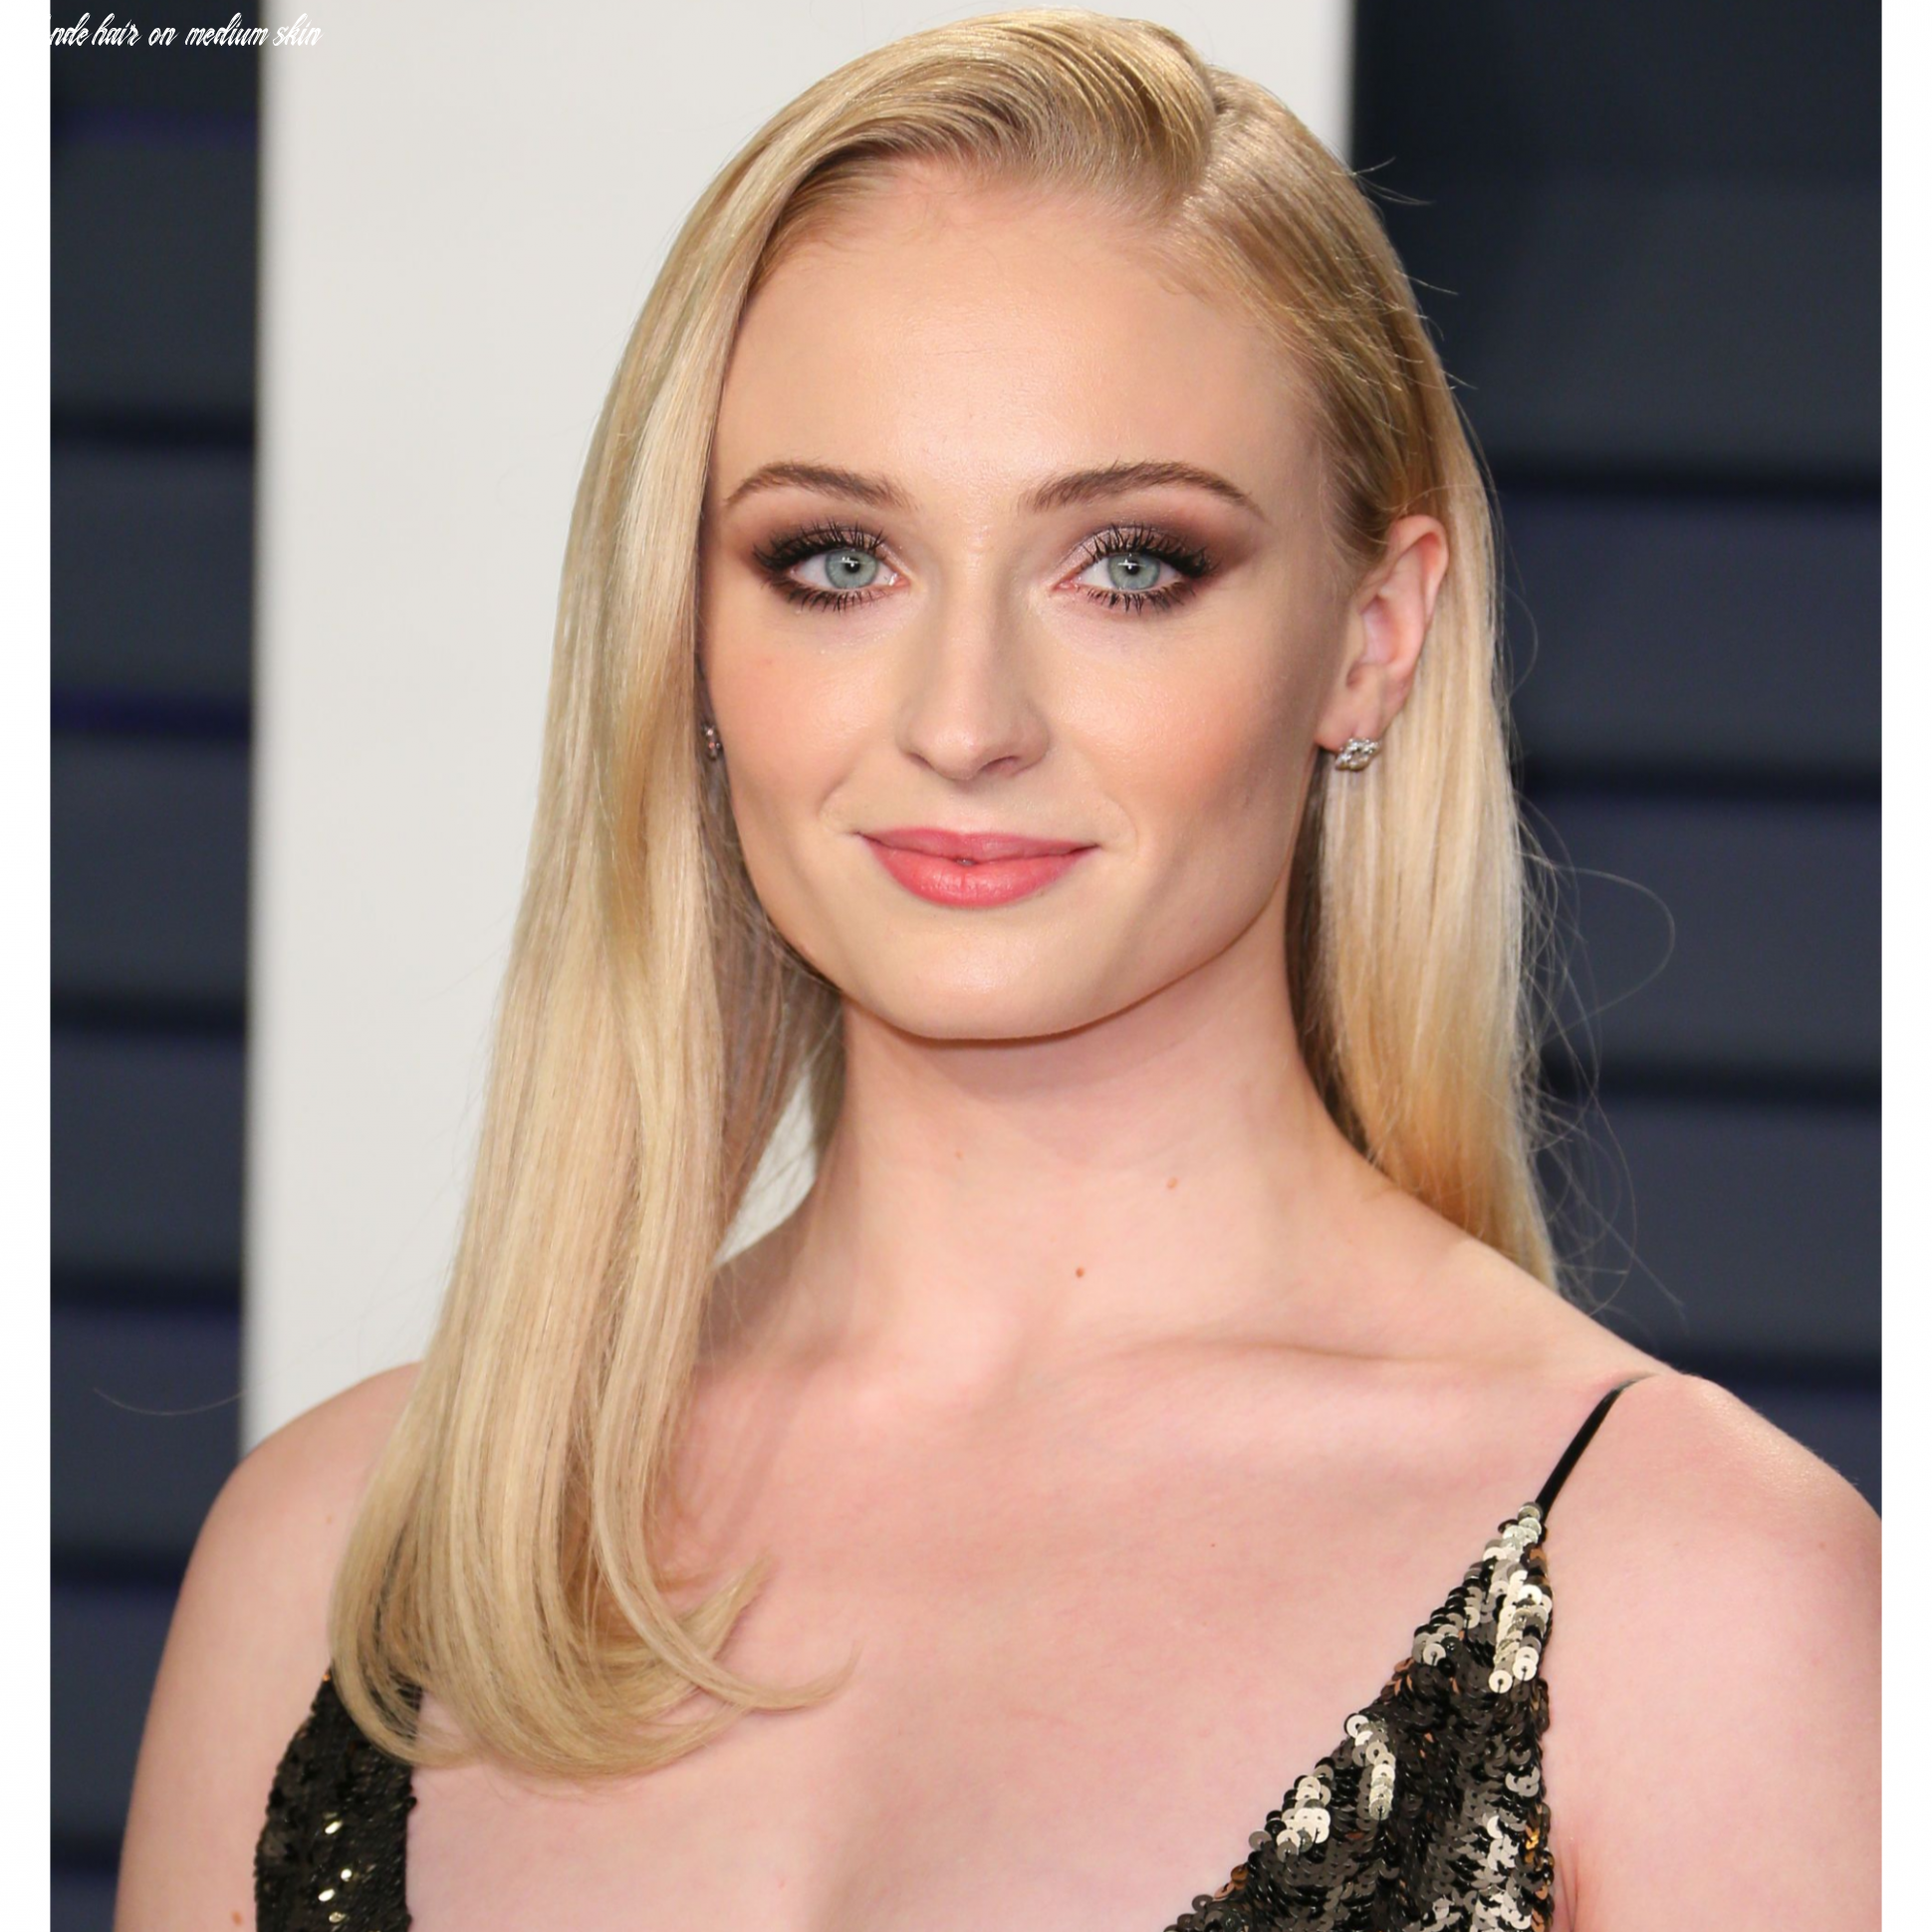 The 11 best blonde hair color ideas for every skin tone | allure blonde hair on medium skin